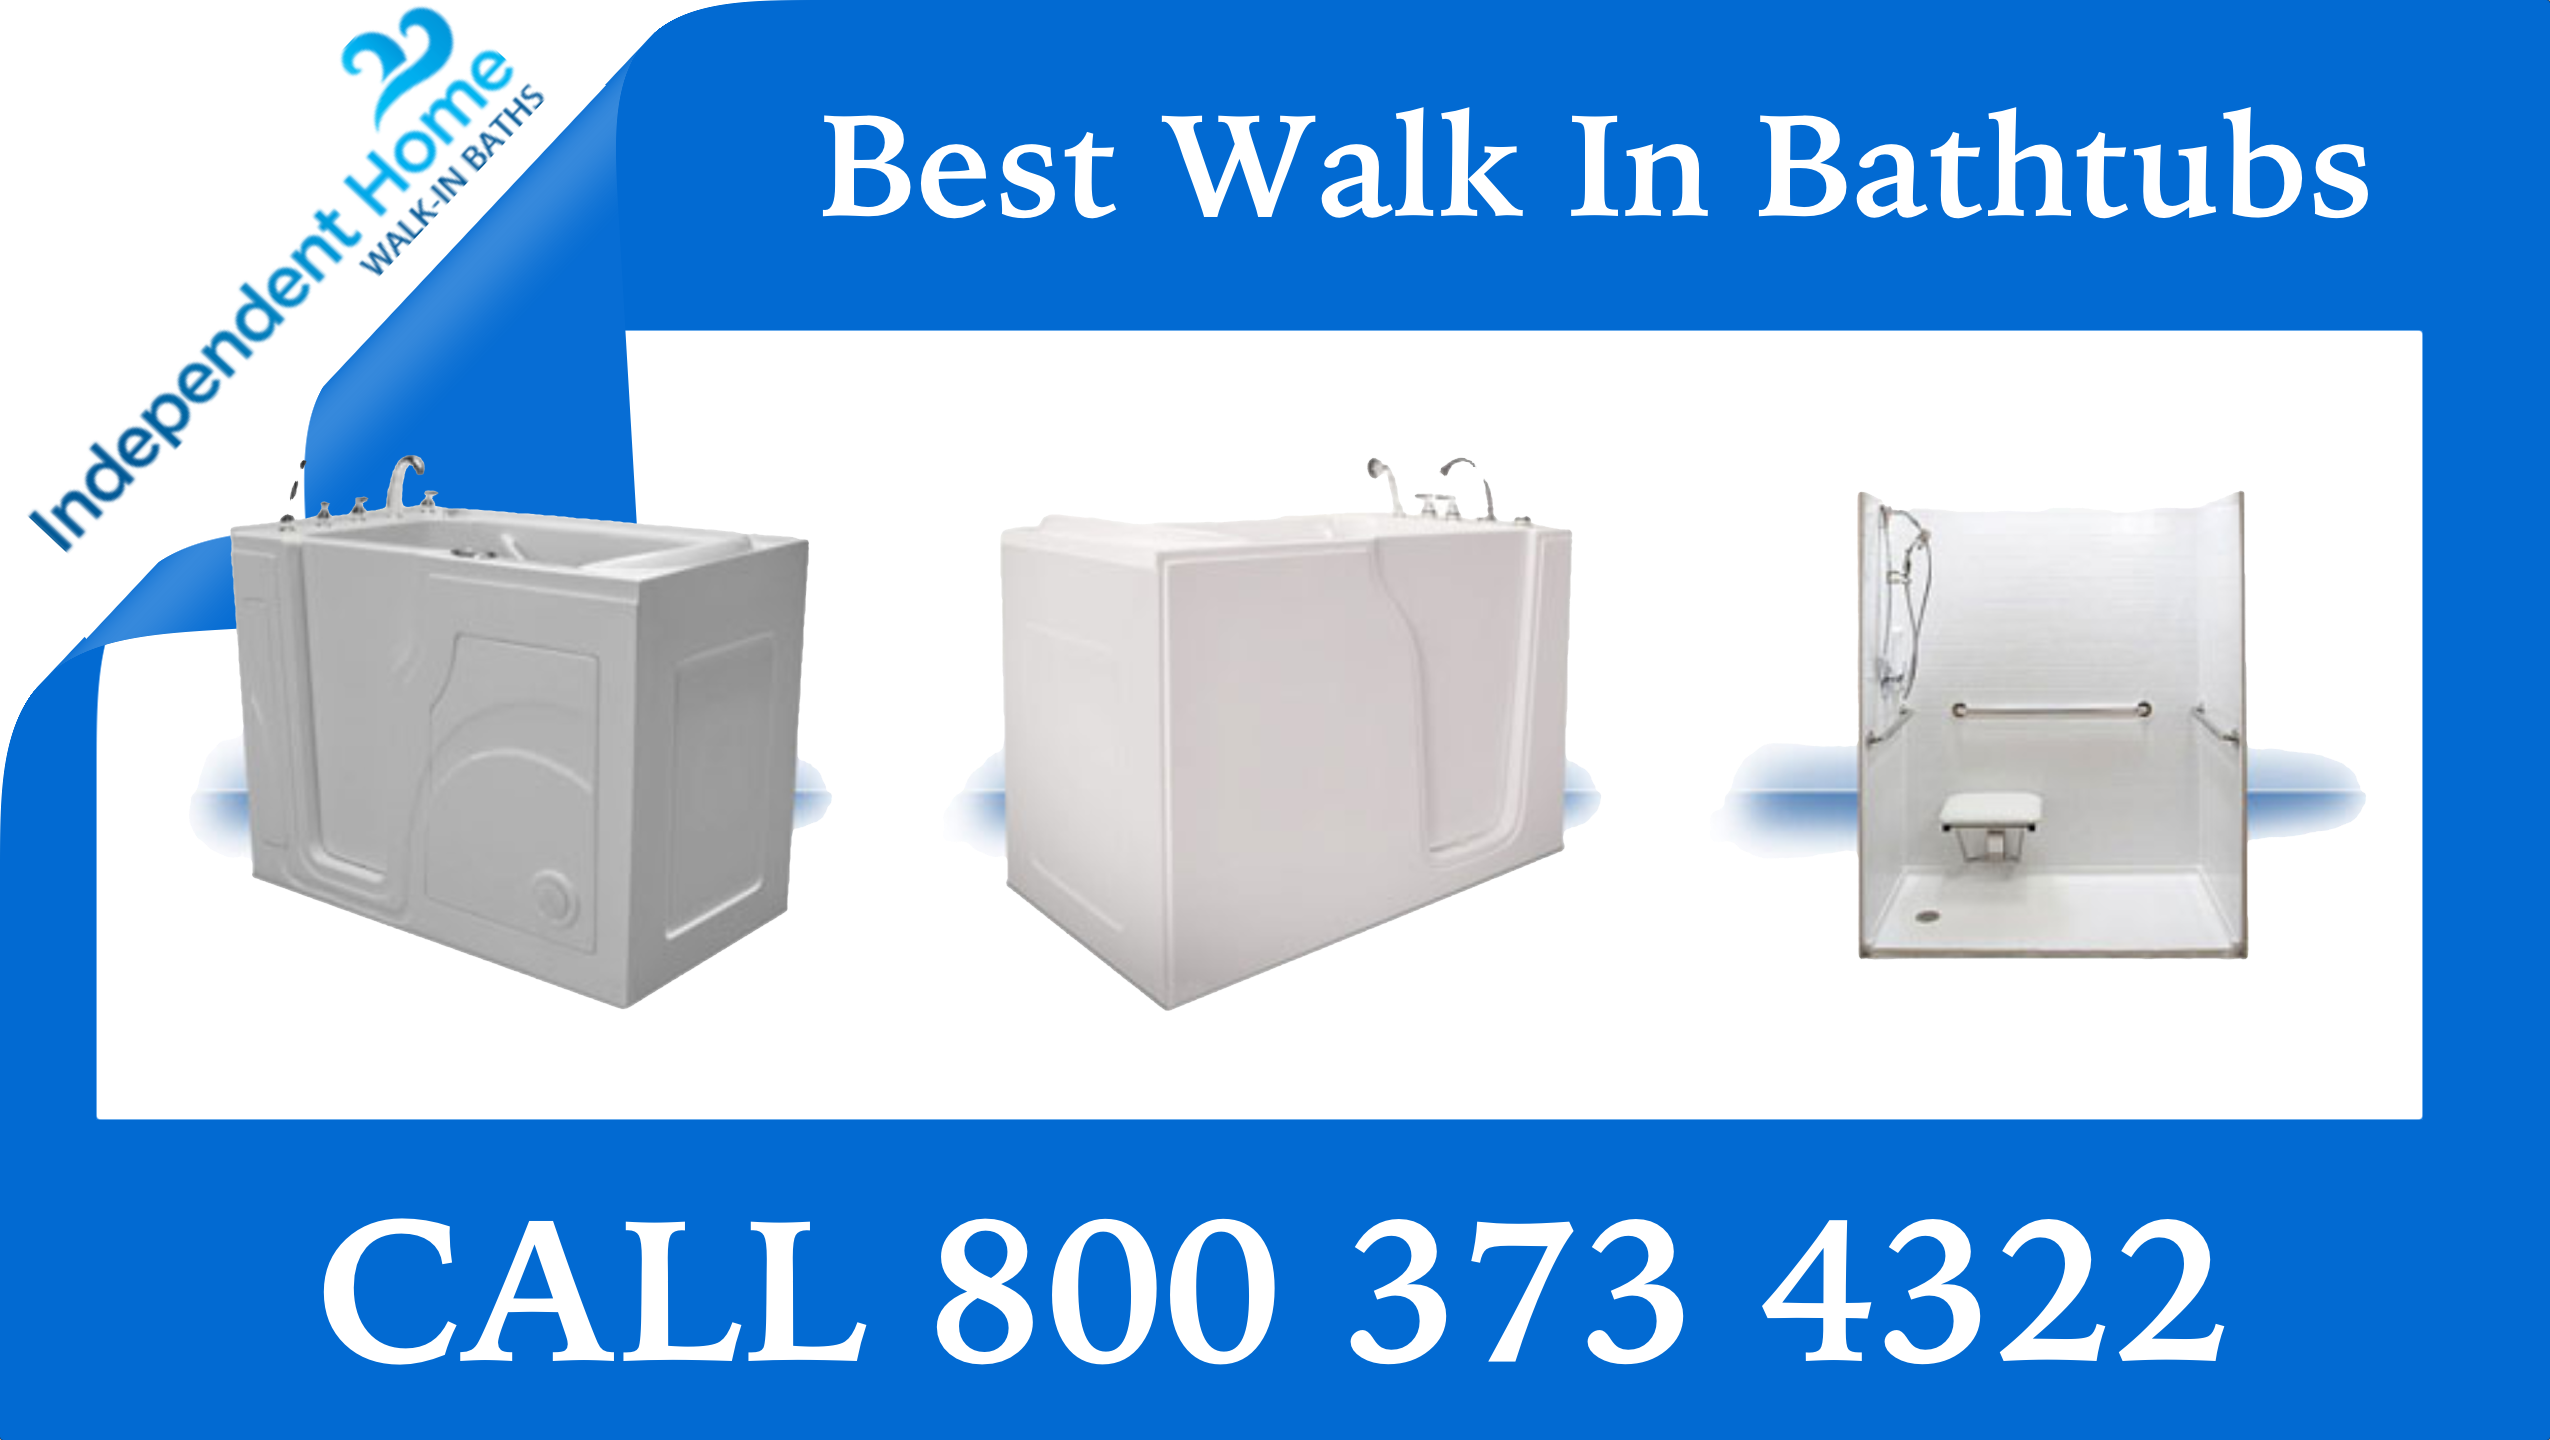 Walk In BathTubs For Sale Best Walk In Tub Company Walk In Tub Company Walk In Tub Walk In Tubs Walk In BathTub Best Tub Company Best Bathtub Company Best Walkin Tubs Best Walkin Bathtubs